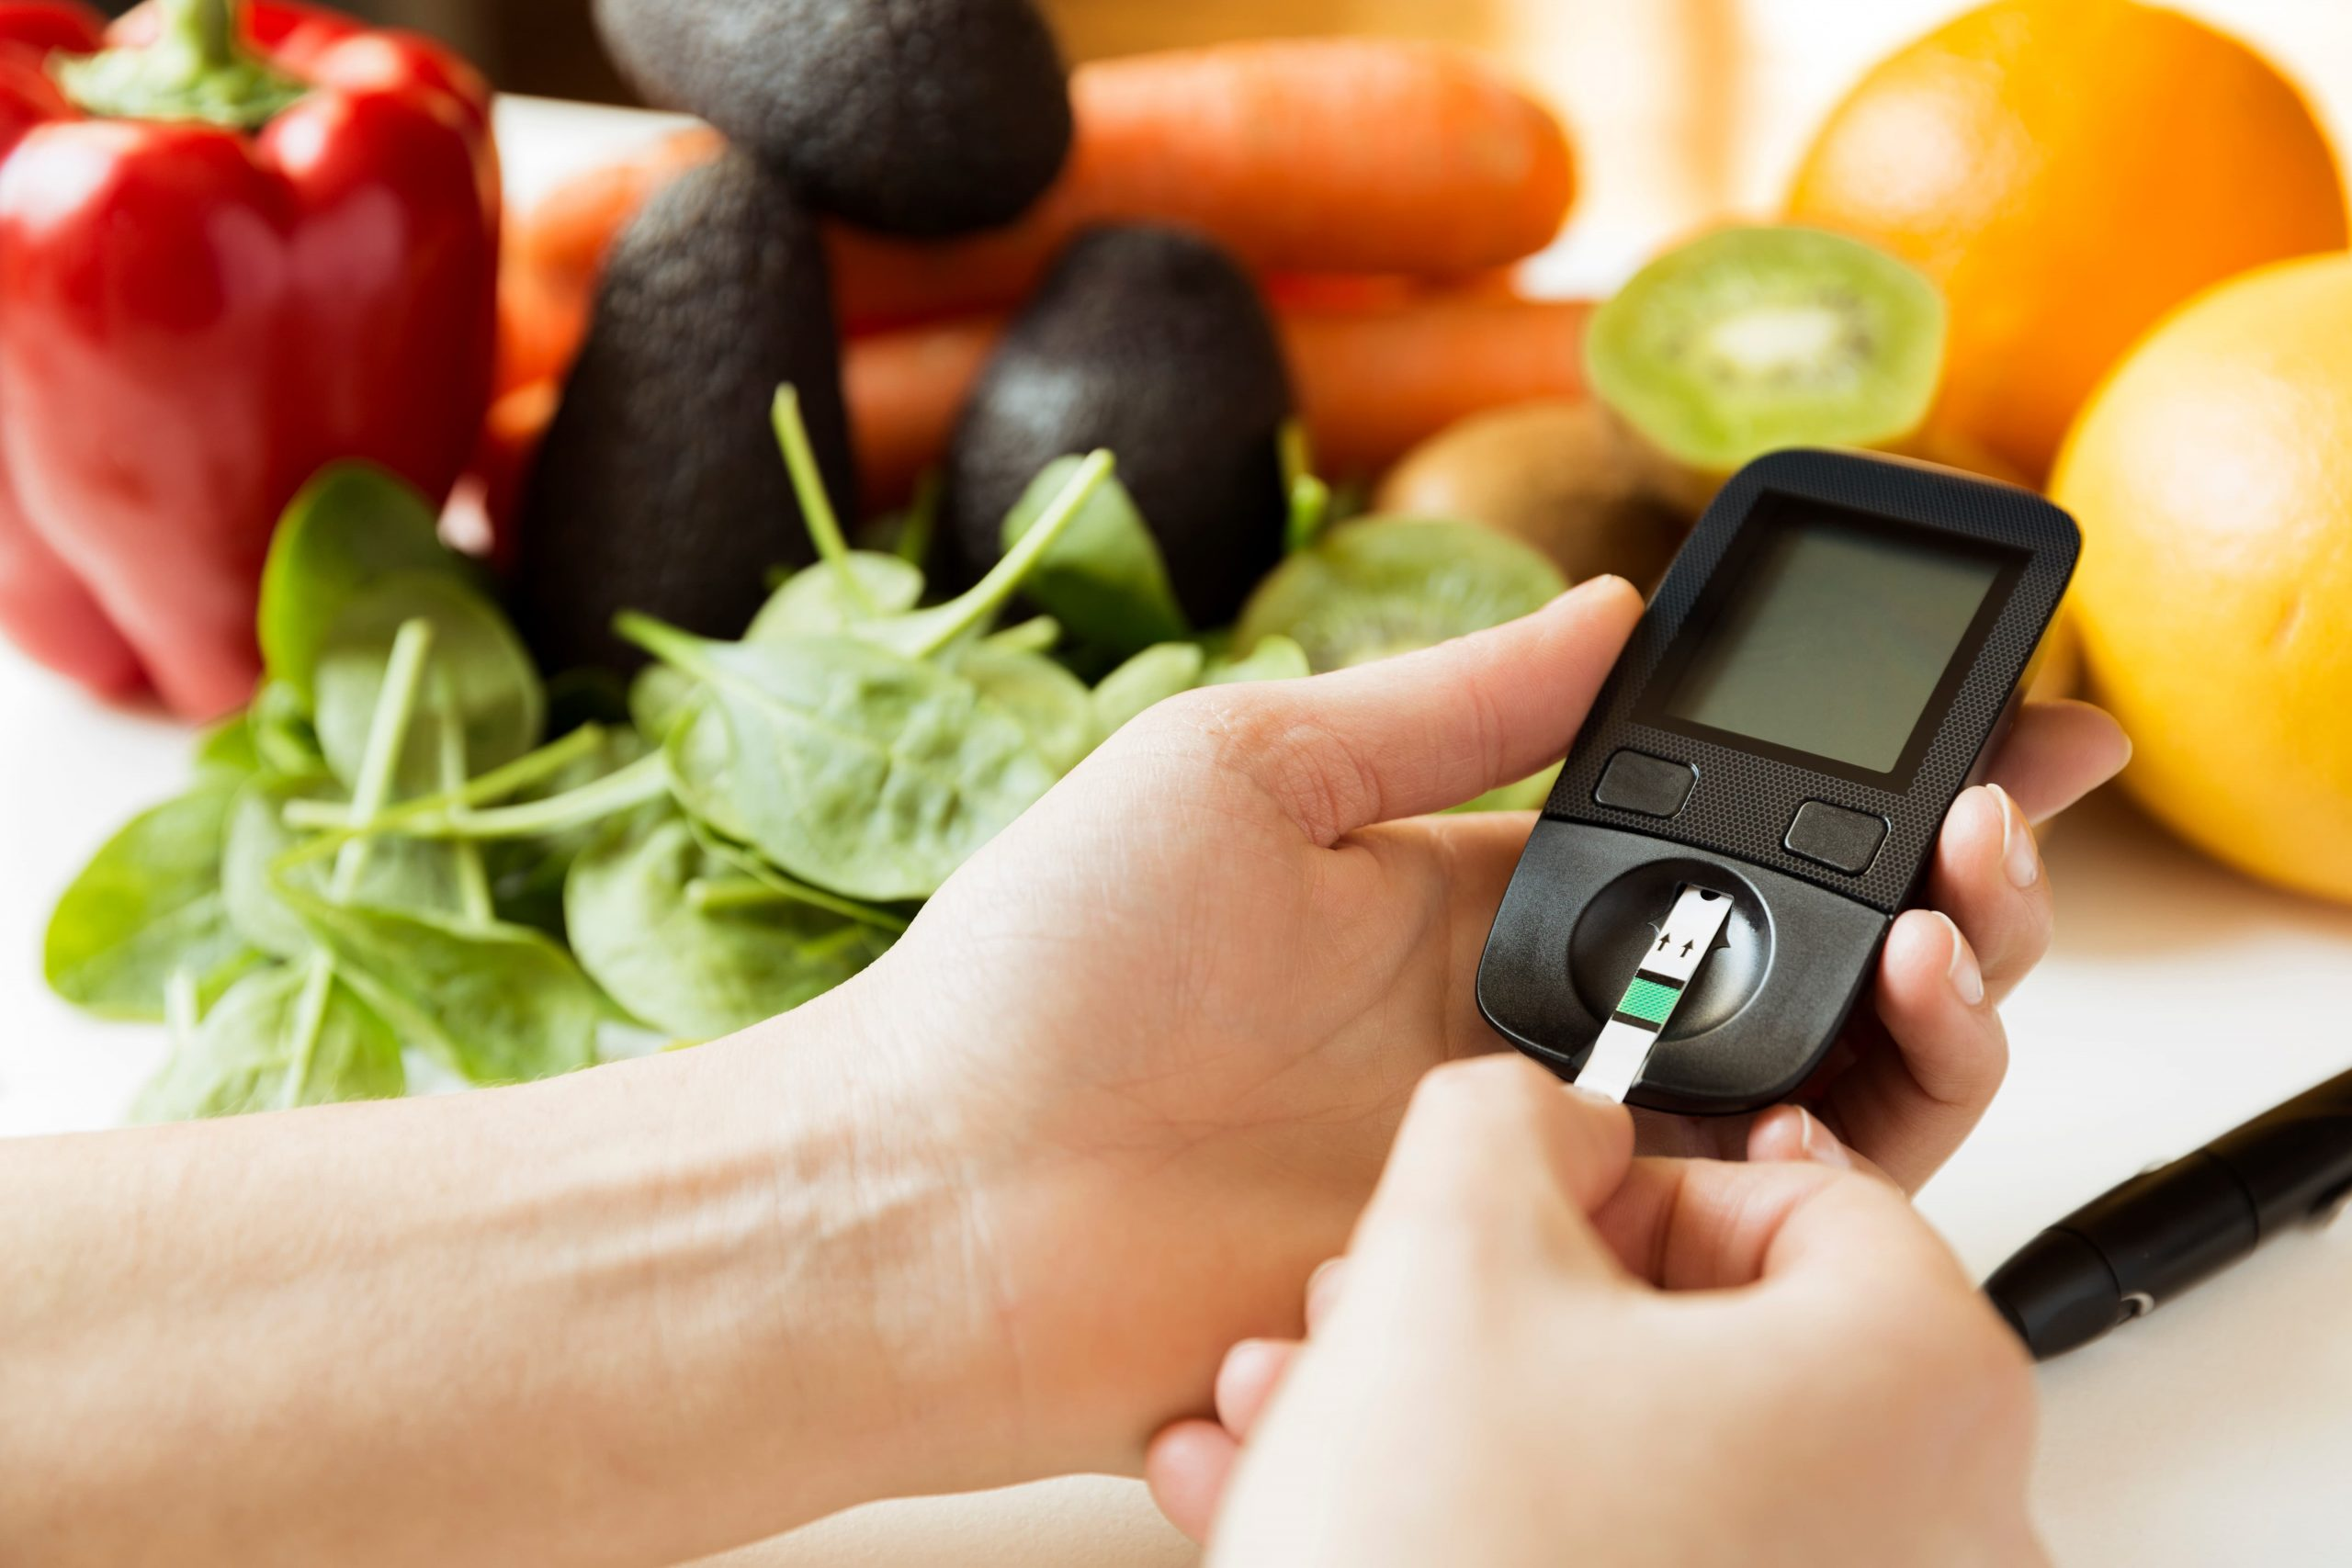 how to manage your Diabetes monitor, diet and healthy food eating nutritional concept with clean fruits and vegetables with diabetic measuring tool kitDiabetes_Education